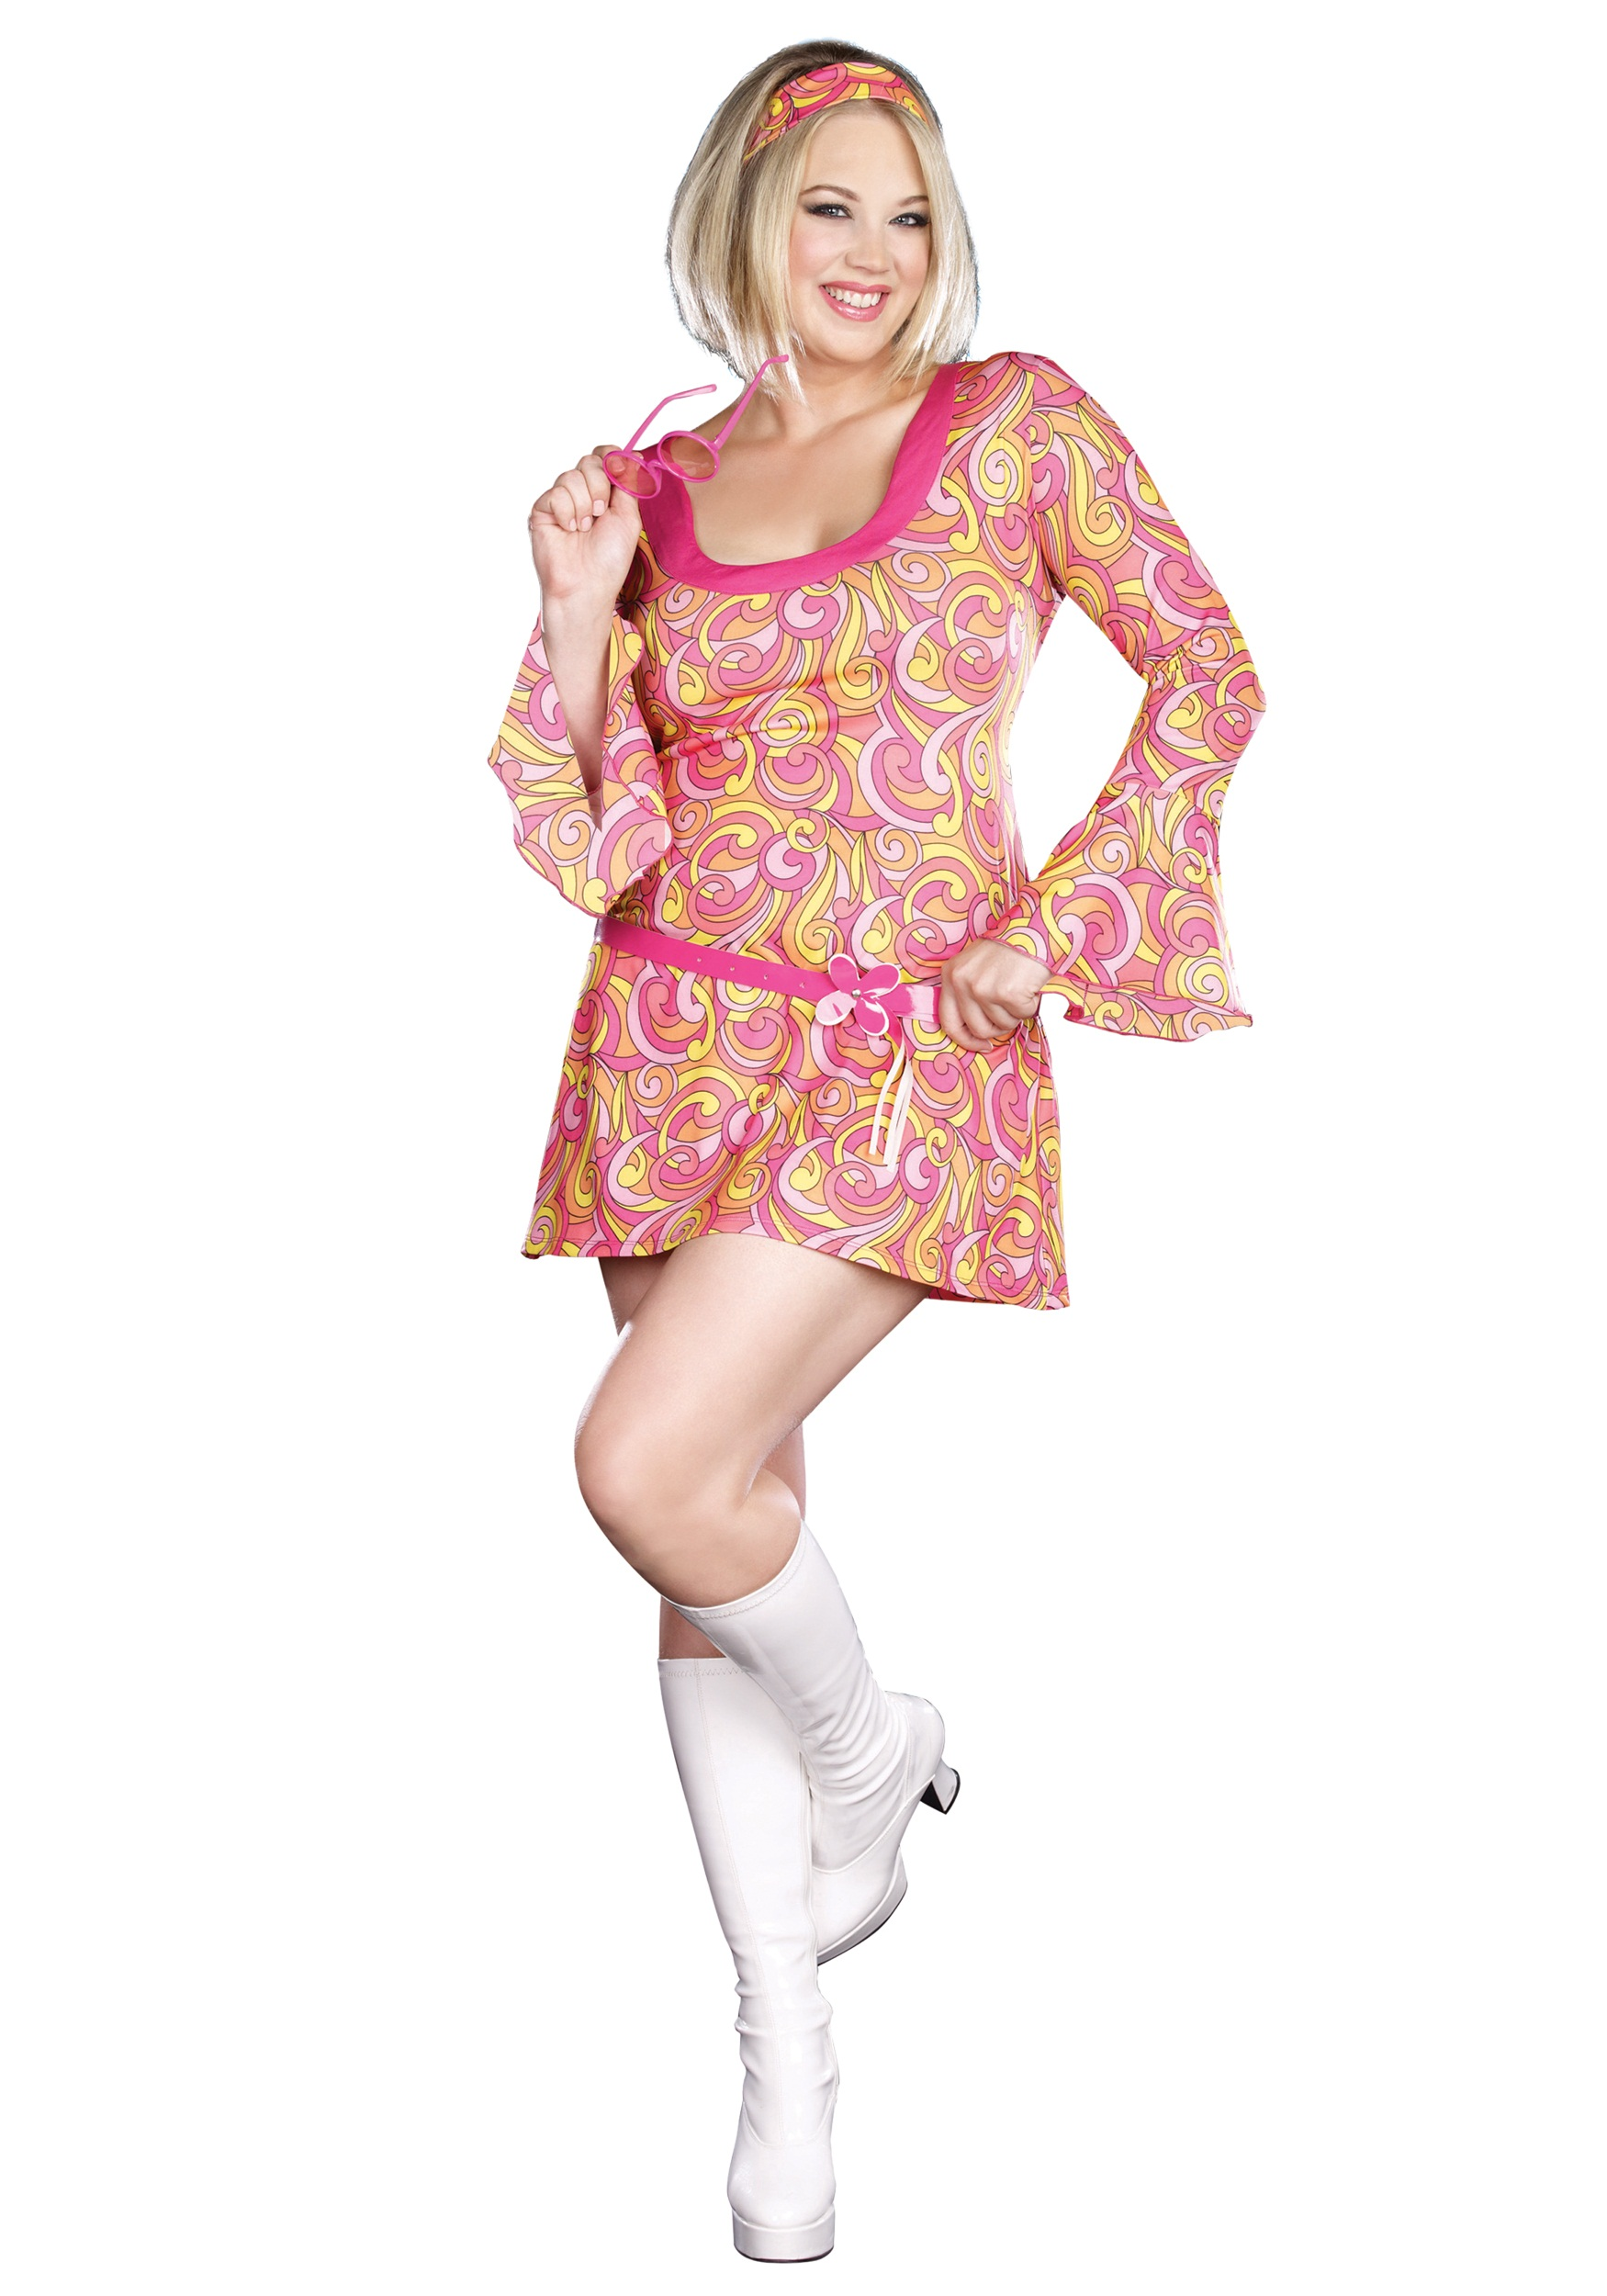 Plus Size Go Go Gorgeous Costume